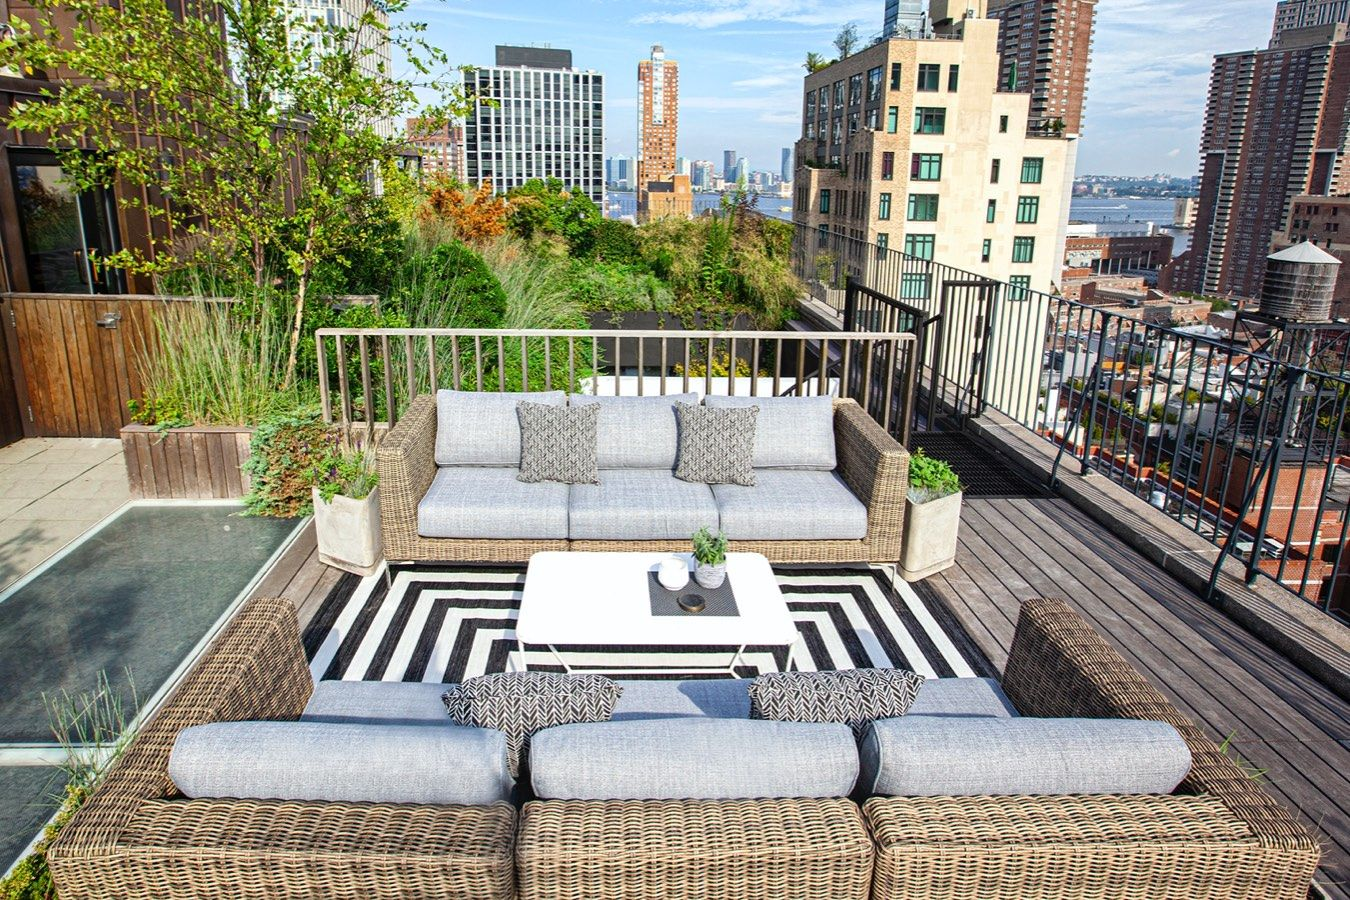 Outdoor Sofa Buying Guide: What To Look For When You Shop